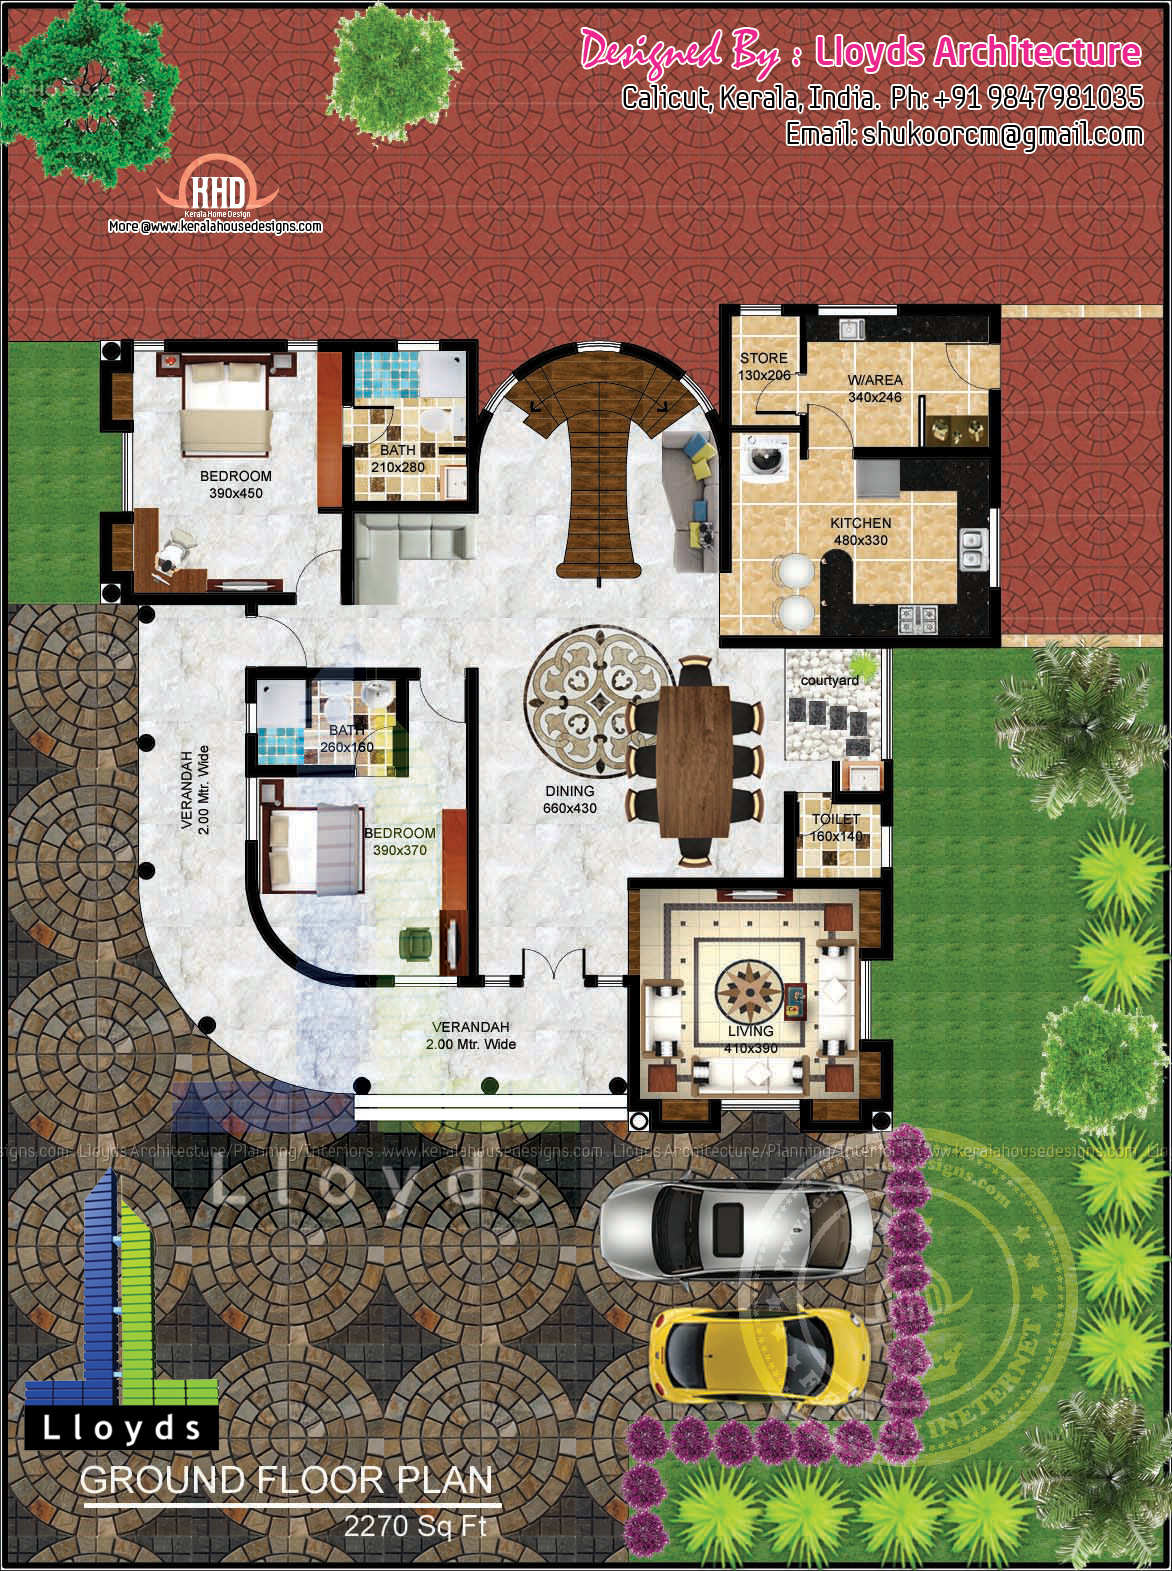 5 bedroom luxurious bungalow floor plan and 3d view for Indian bungalow designs and floor plans